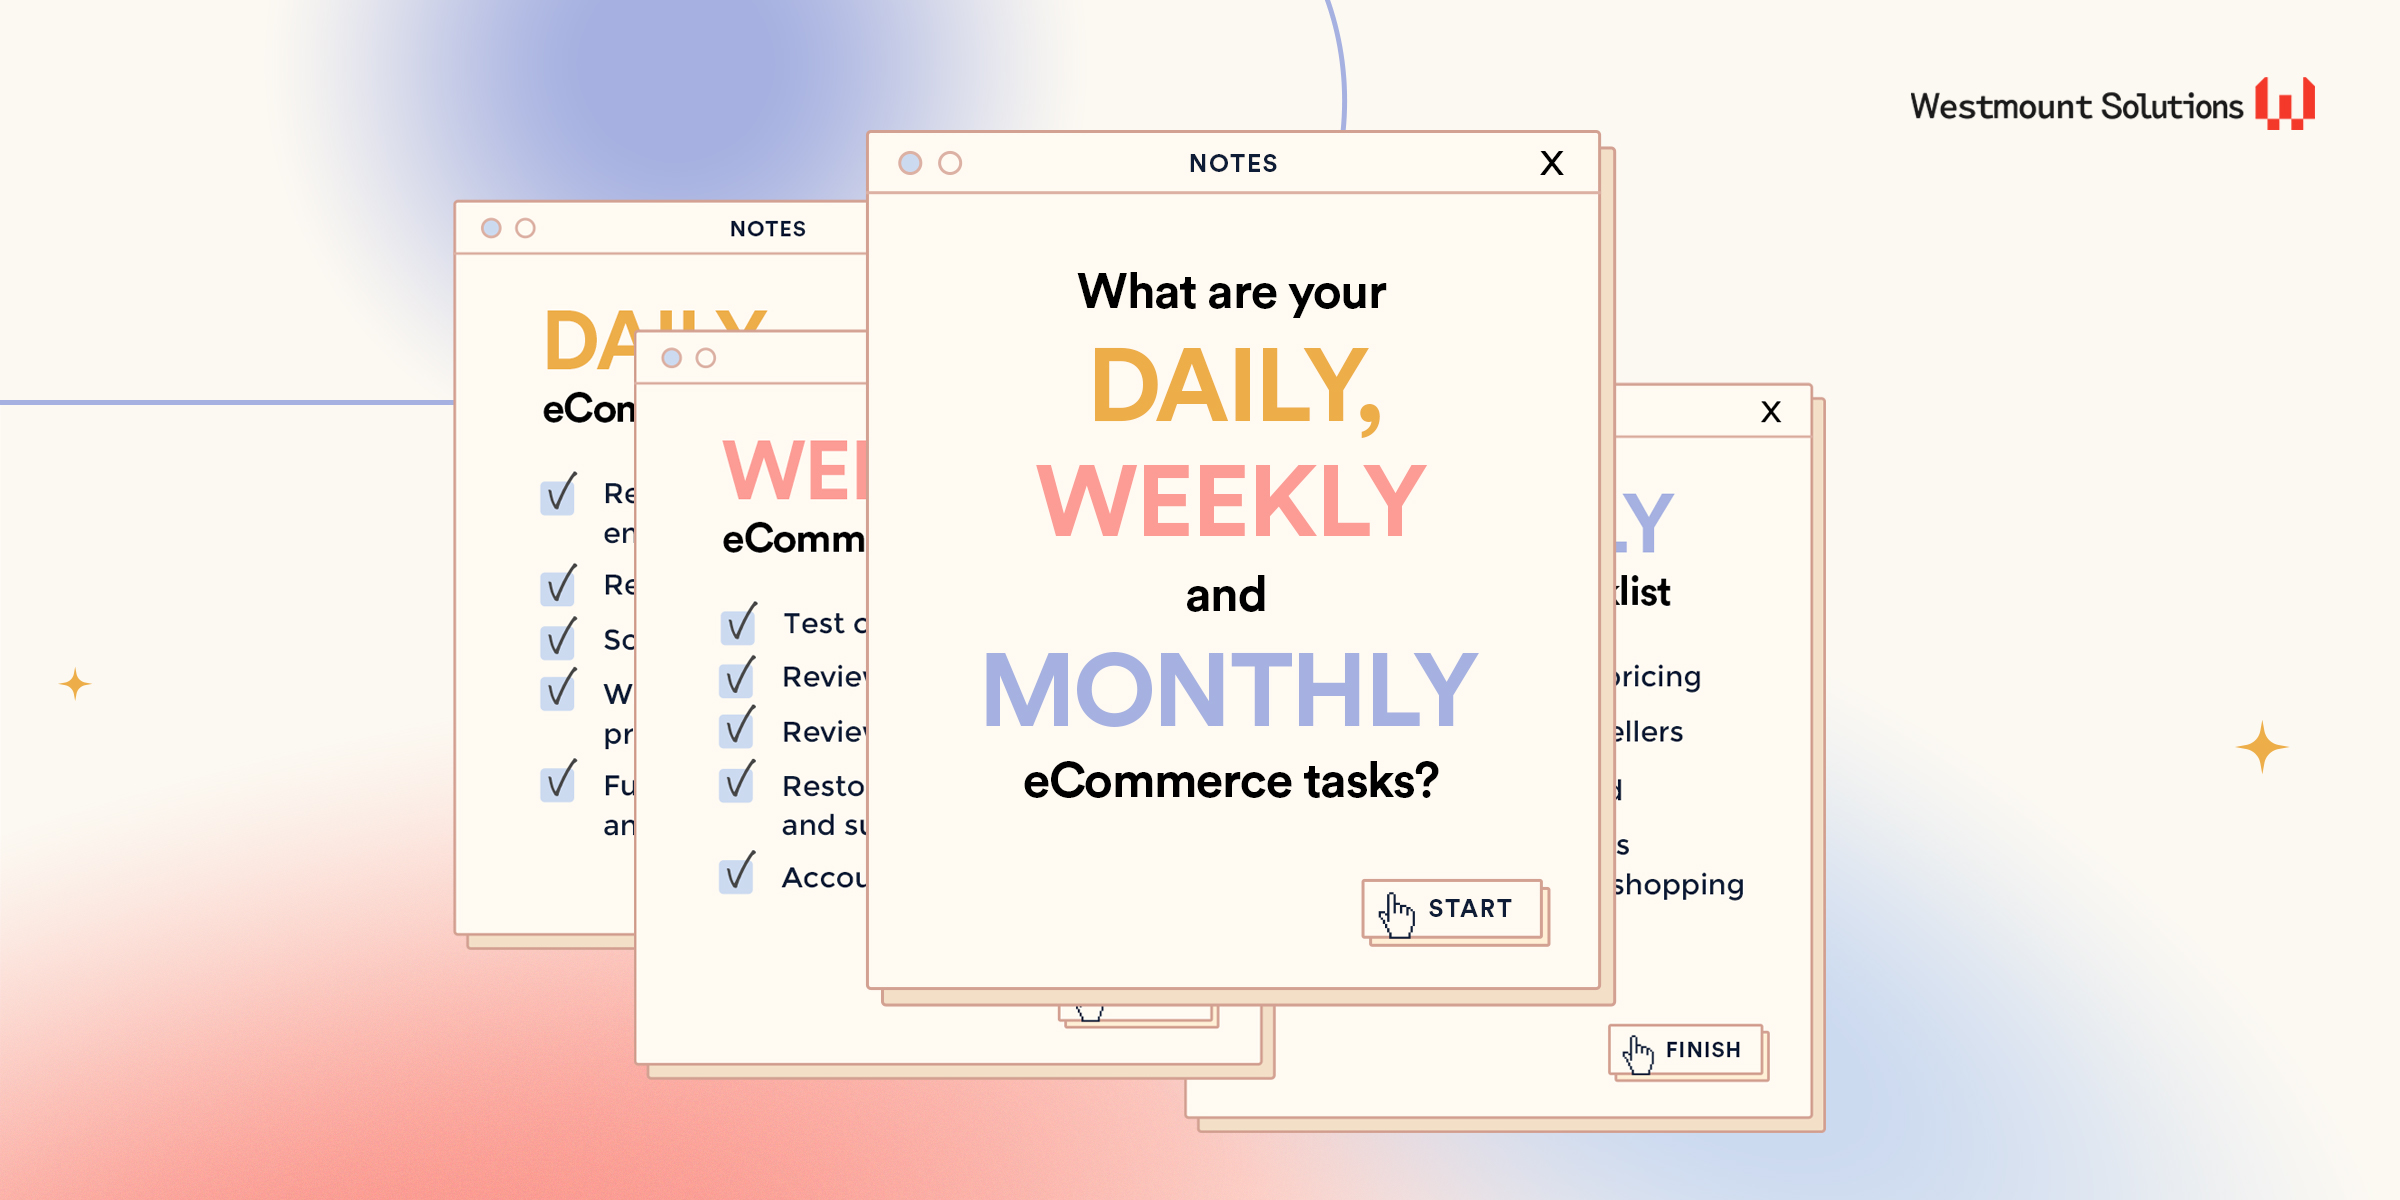 Your daily, weekly and monthly eCommerce checklists